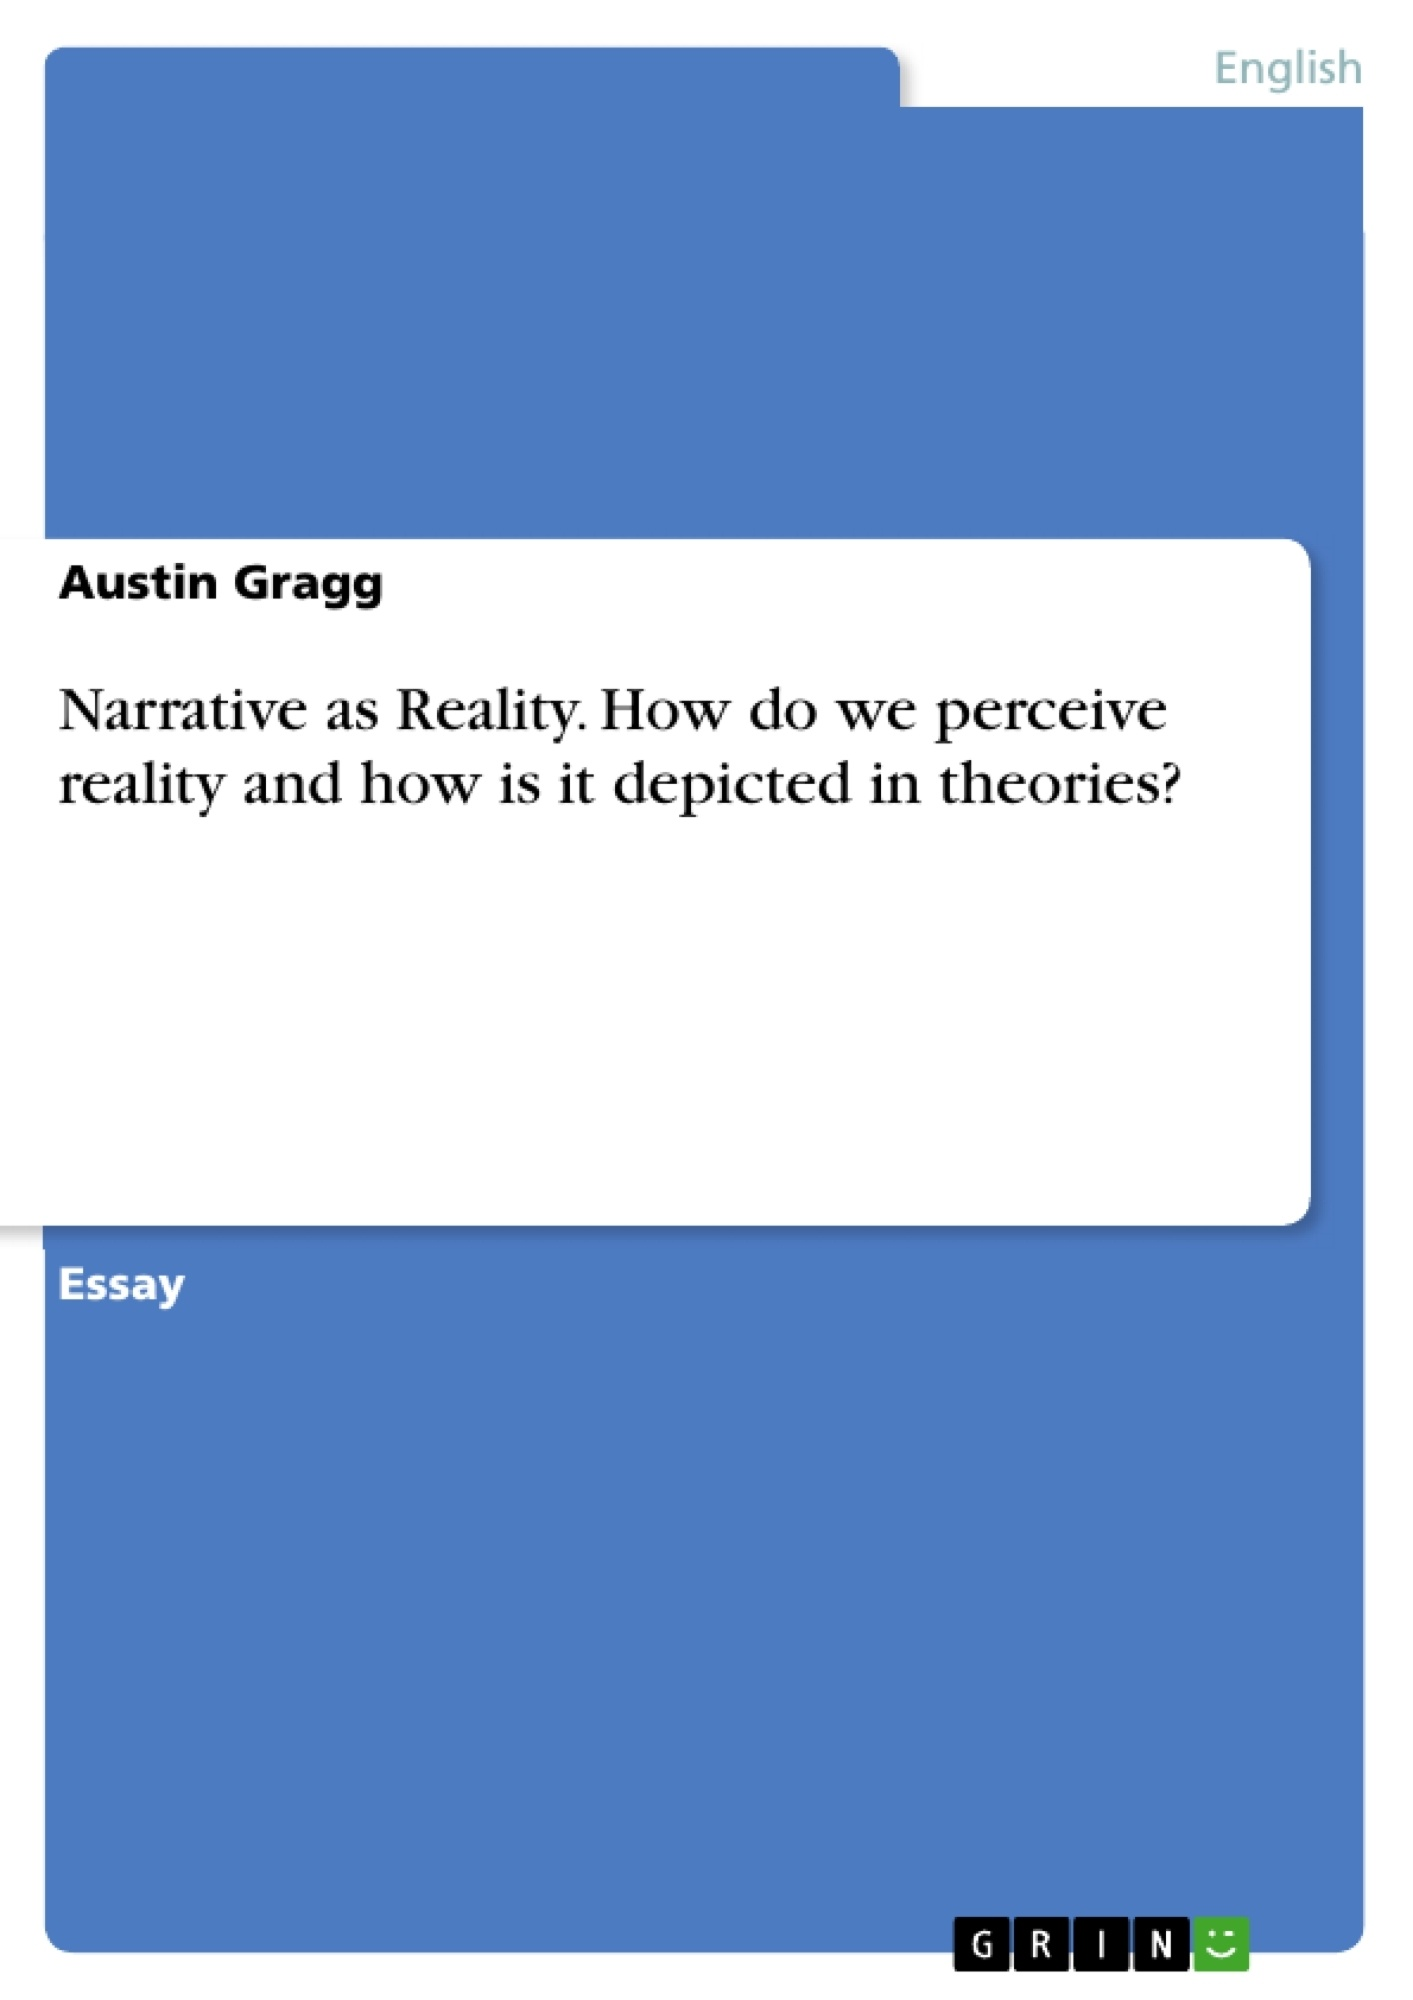 Title: Narrative as Reality. How do we perceive reality and how is it depicted in theories?